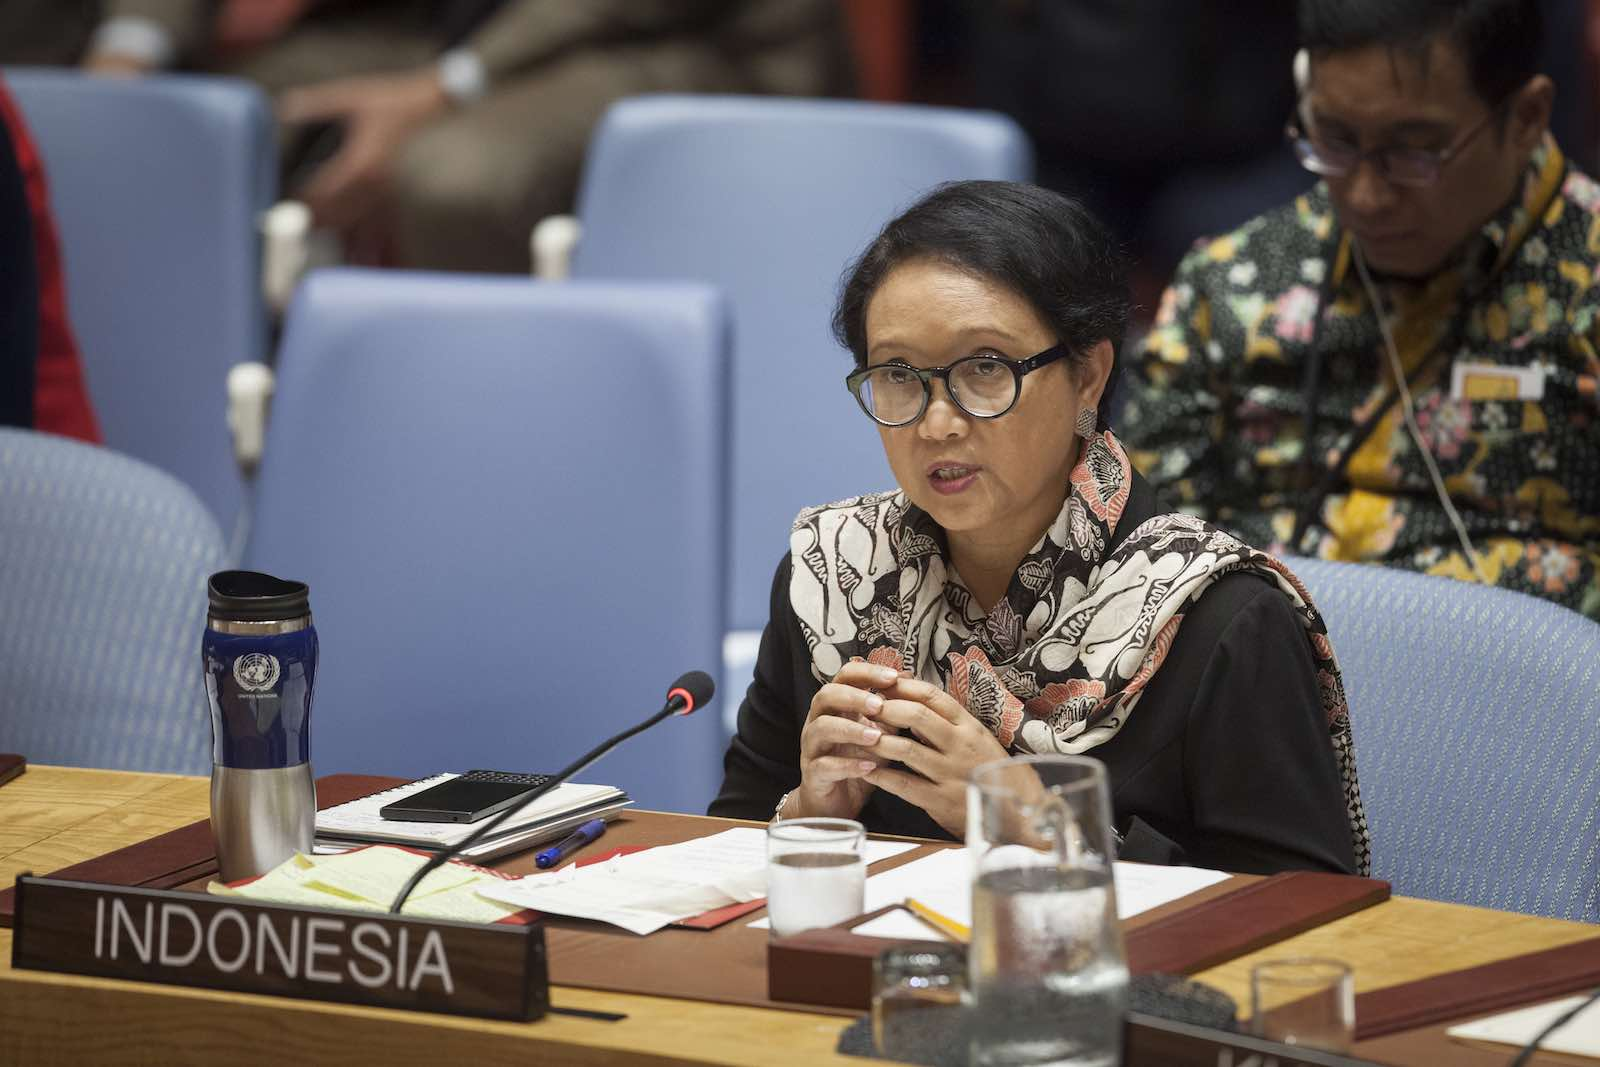 Indonesia's Foreign Minister Retno Marsudi addresses the Security Council last year (Ariana Lindquist/UN Photo)